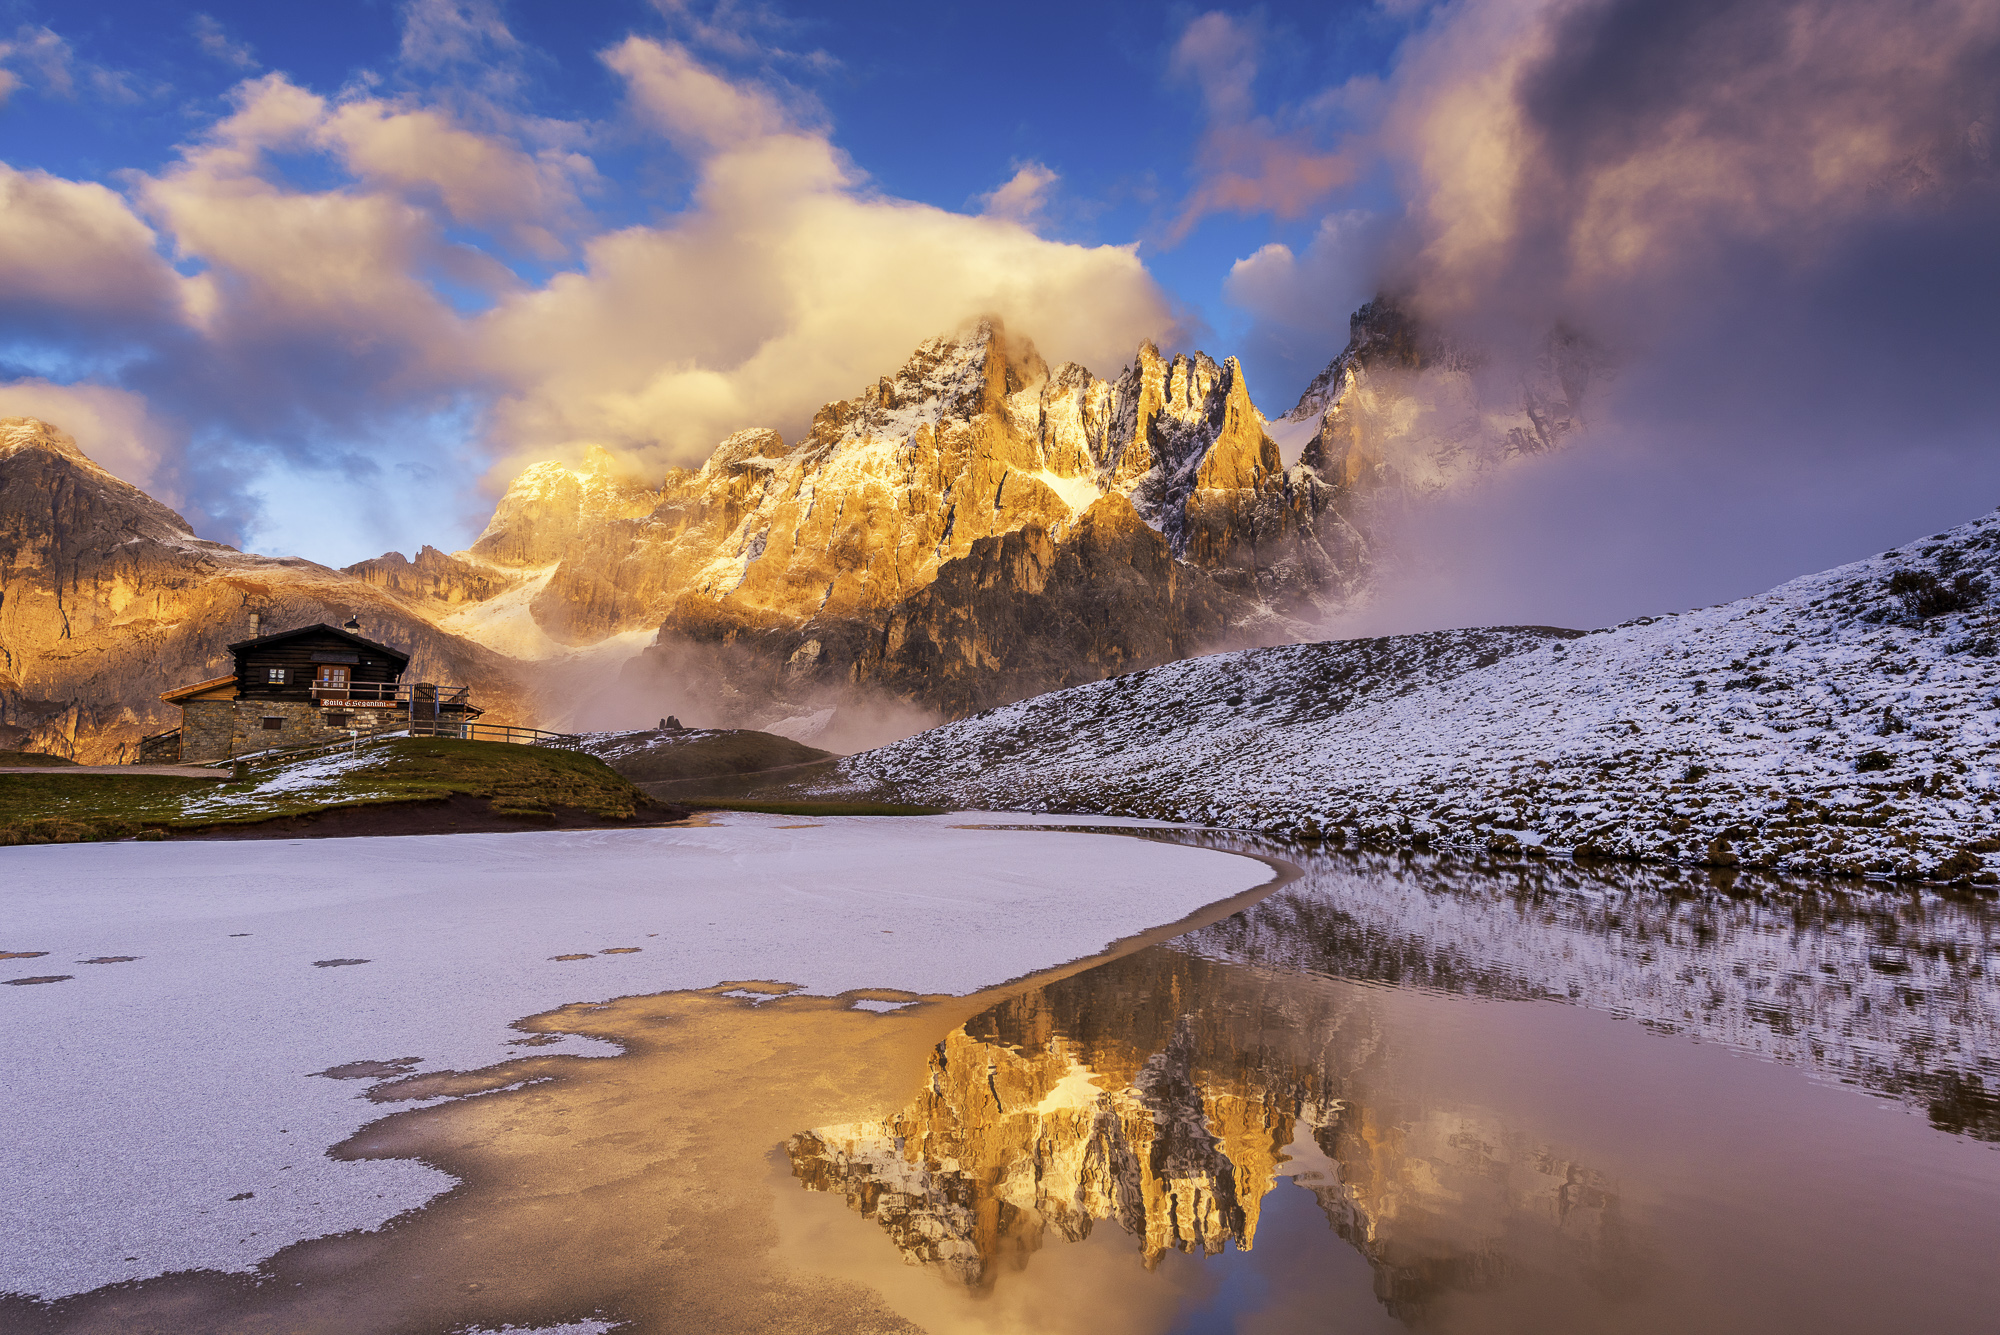 Pale di San Martino Reflecting in Partially Frozen Lake, Dolomites, Trentino, Italy